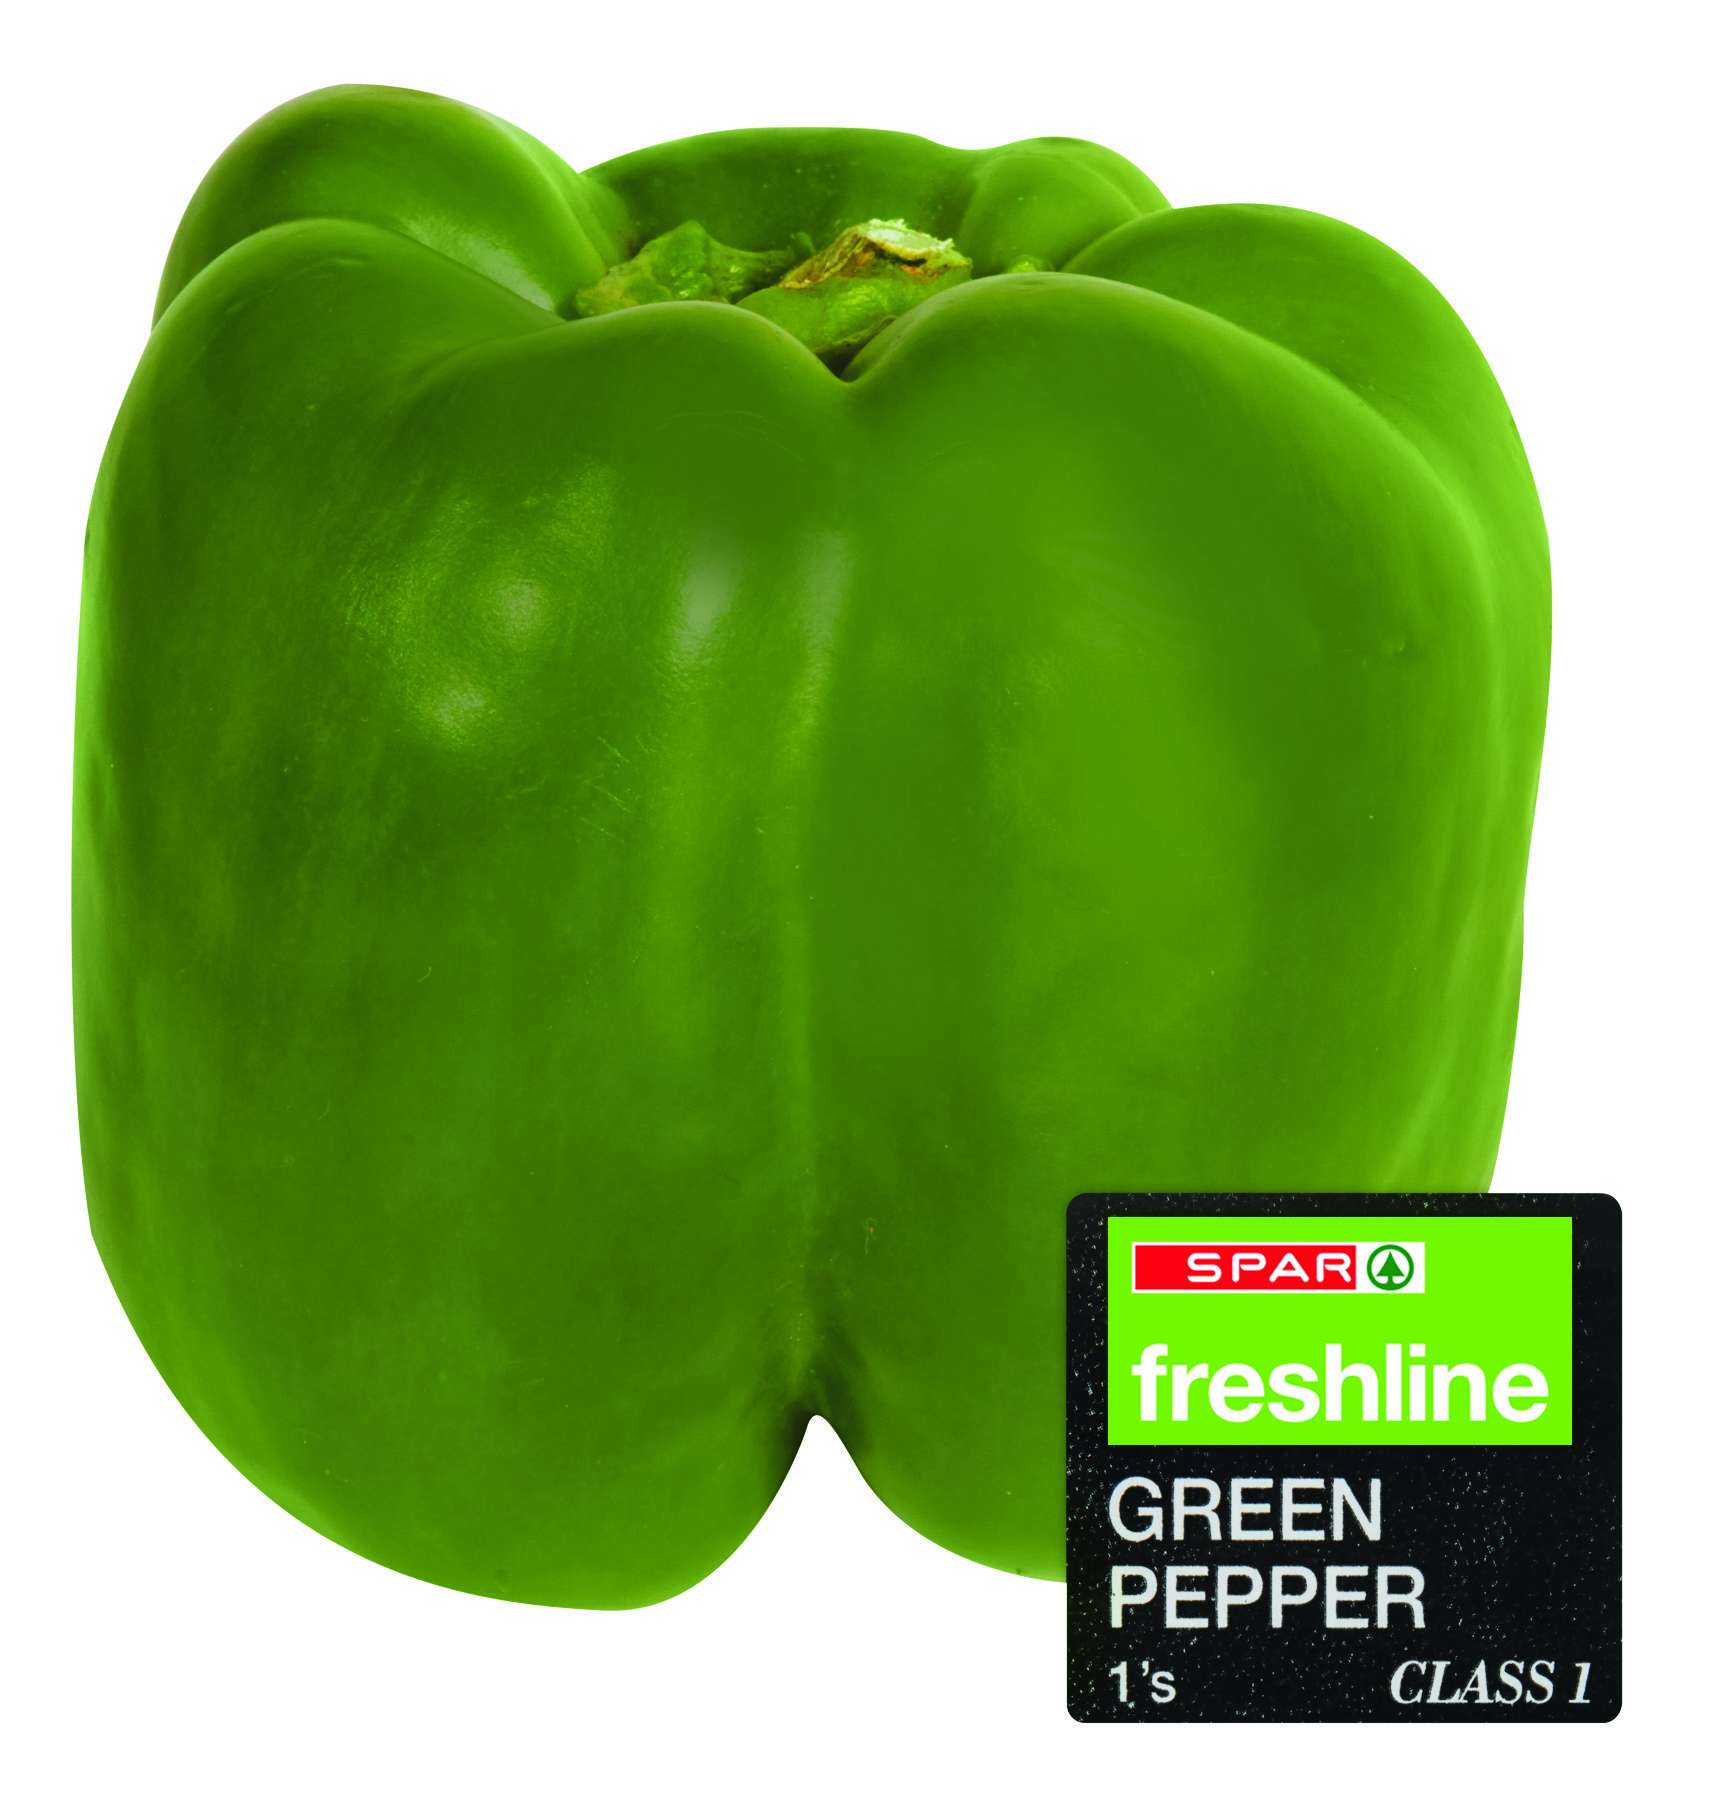 freshline green peppers - single